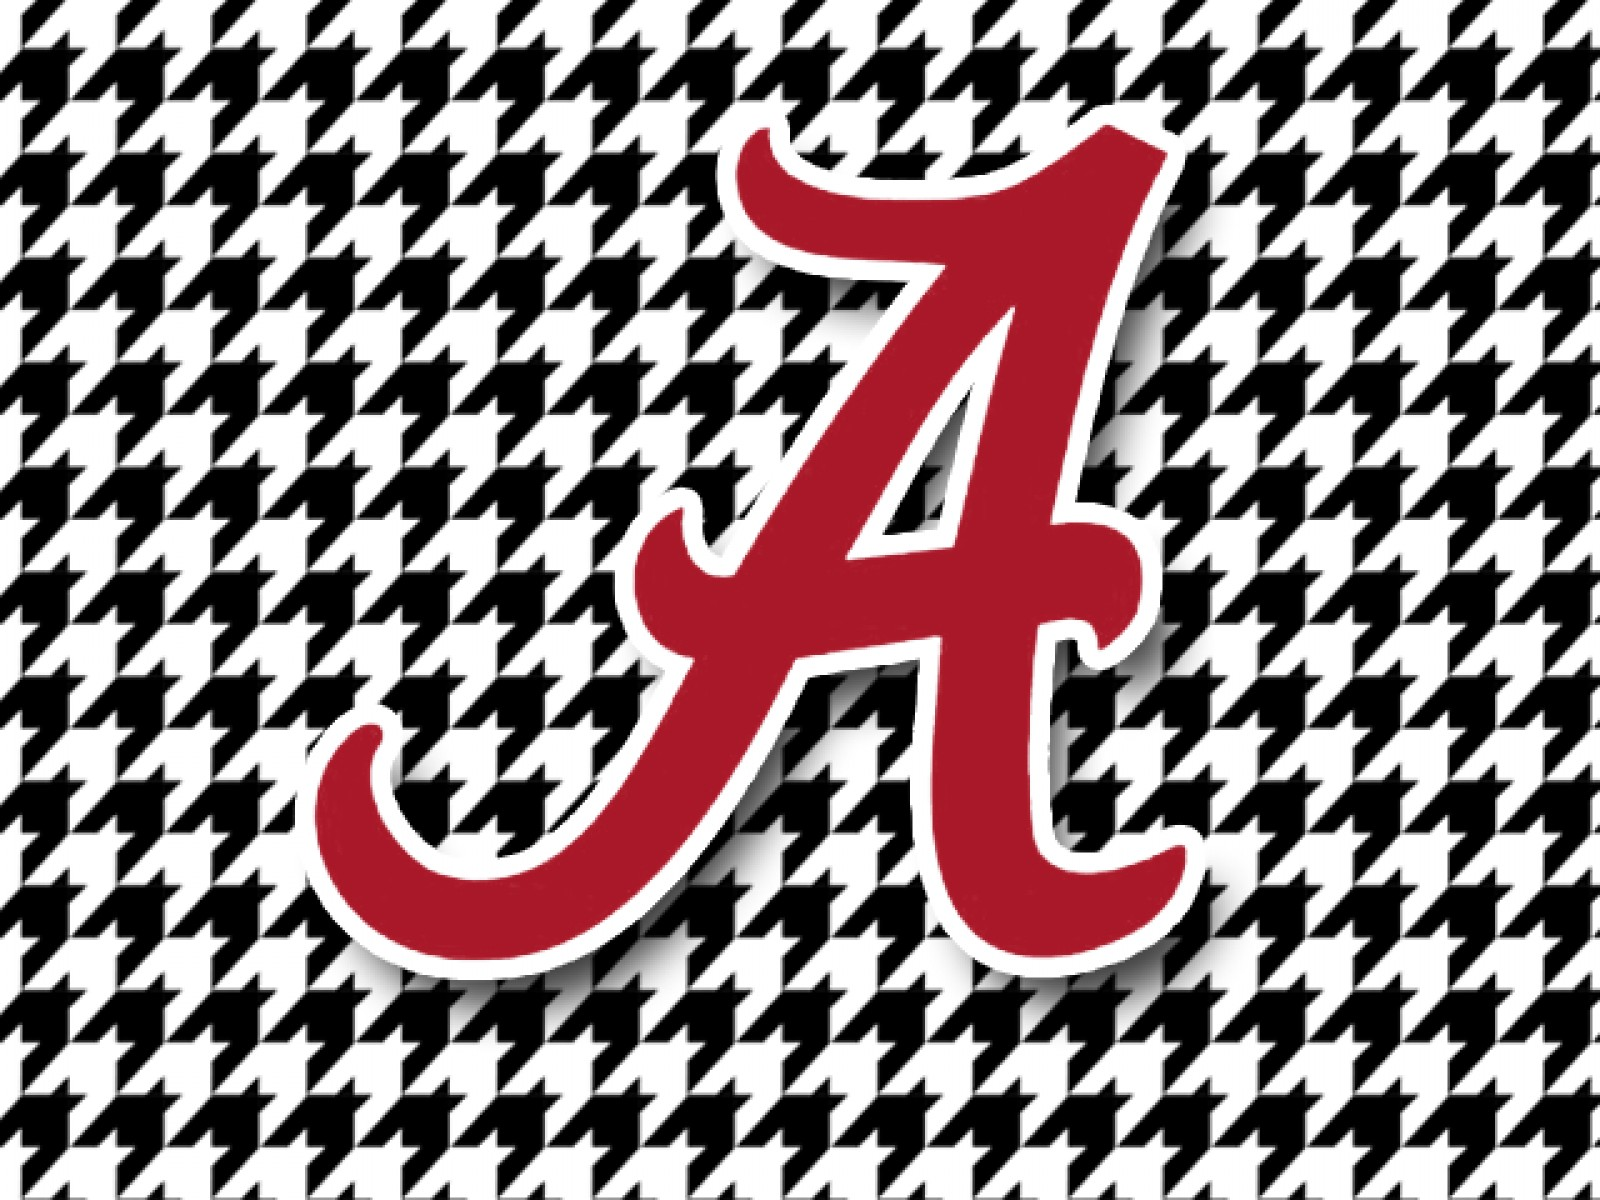 The University of Alabama Crimson Tide SEC Champions Art Home 1600x1200